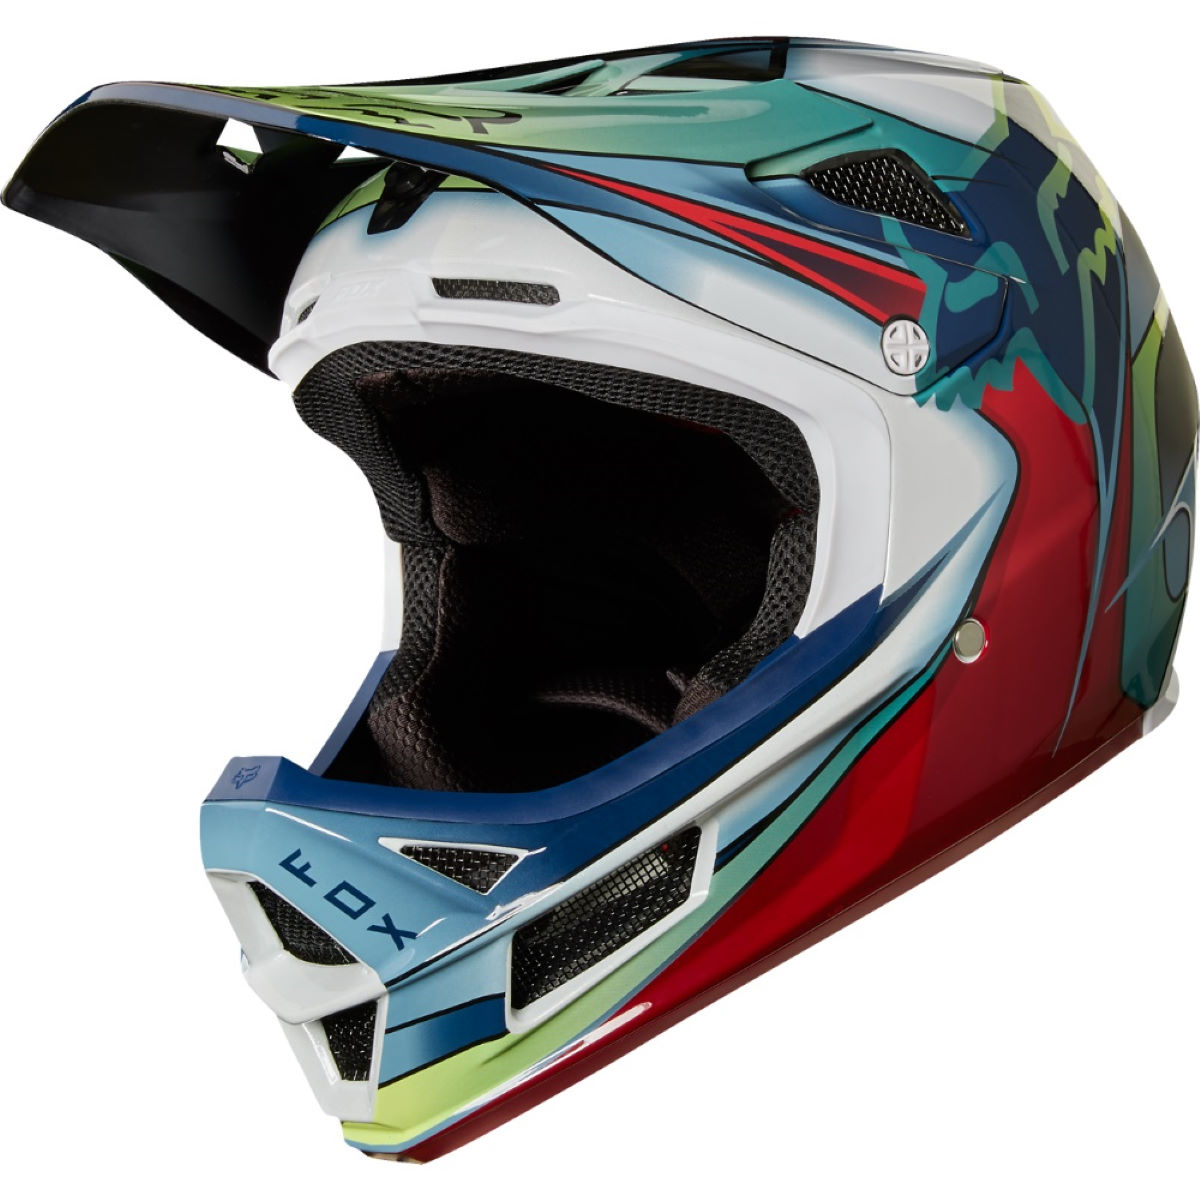 Casque Fox Racing Rampage Pro Carbon Kustom - L Blue/White/Red